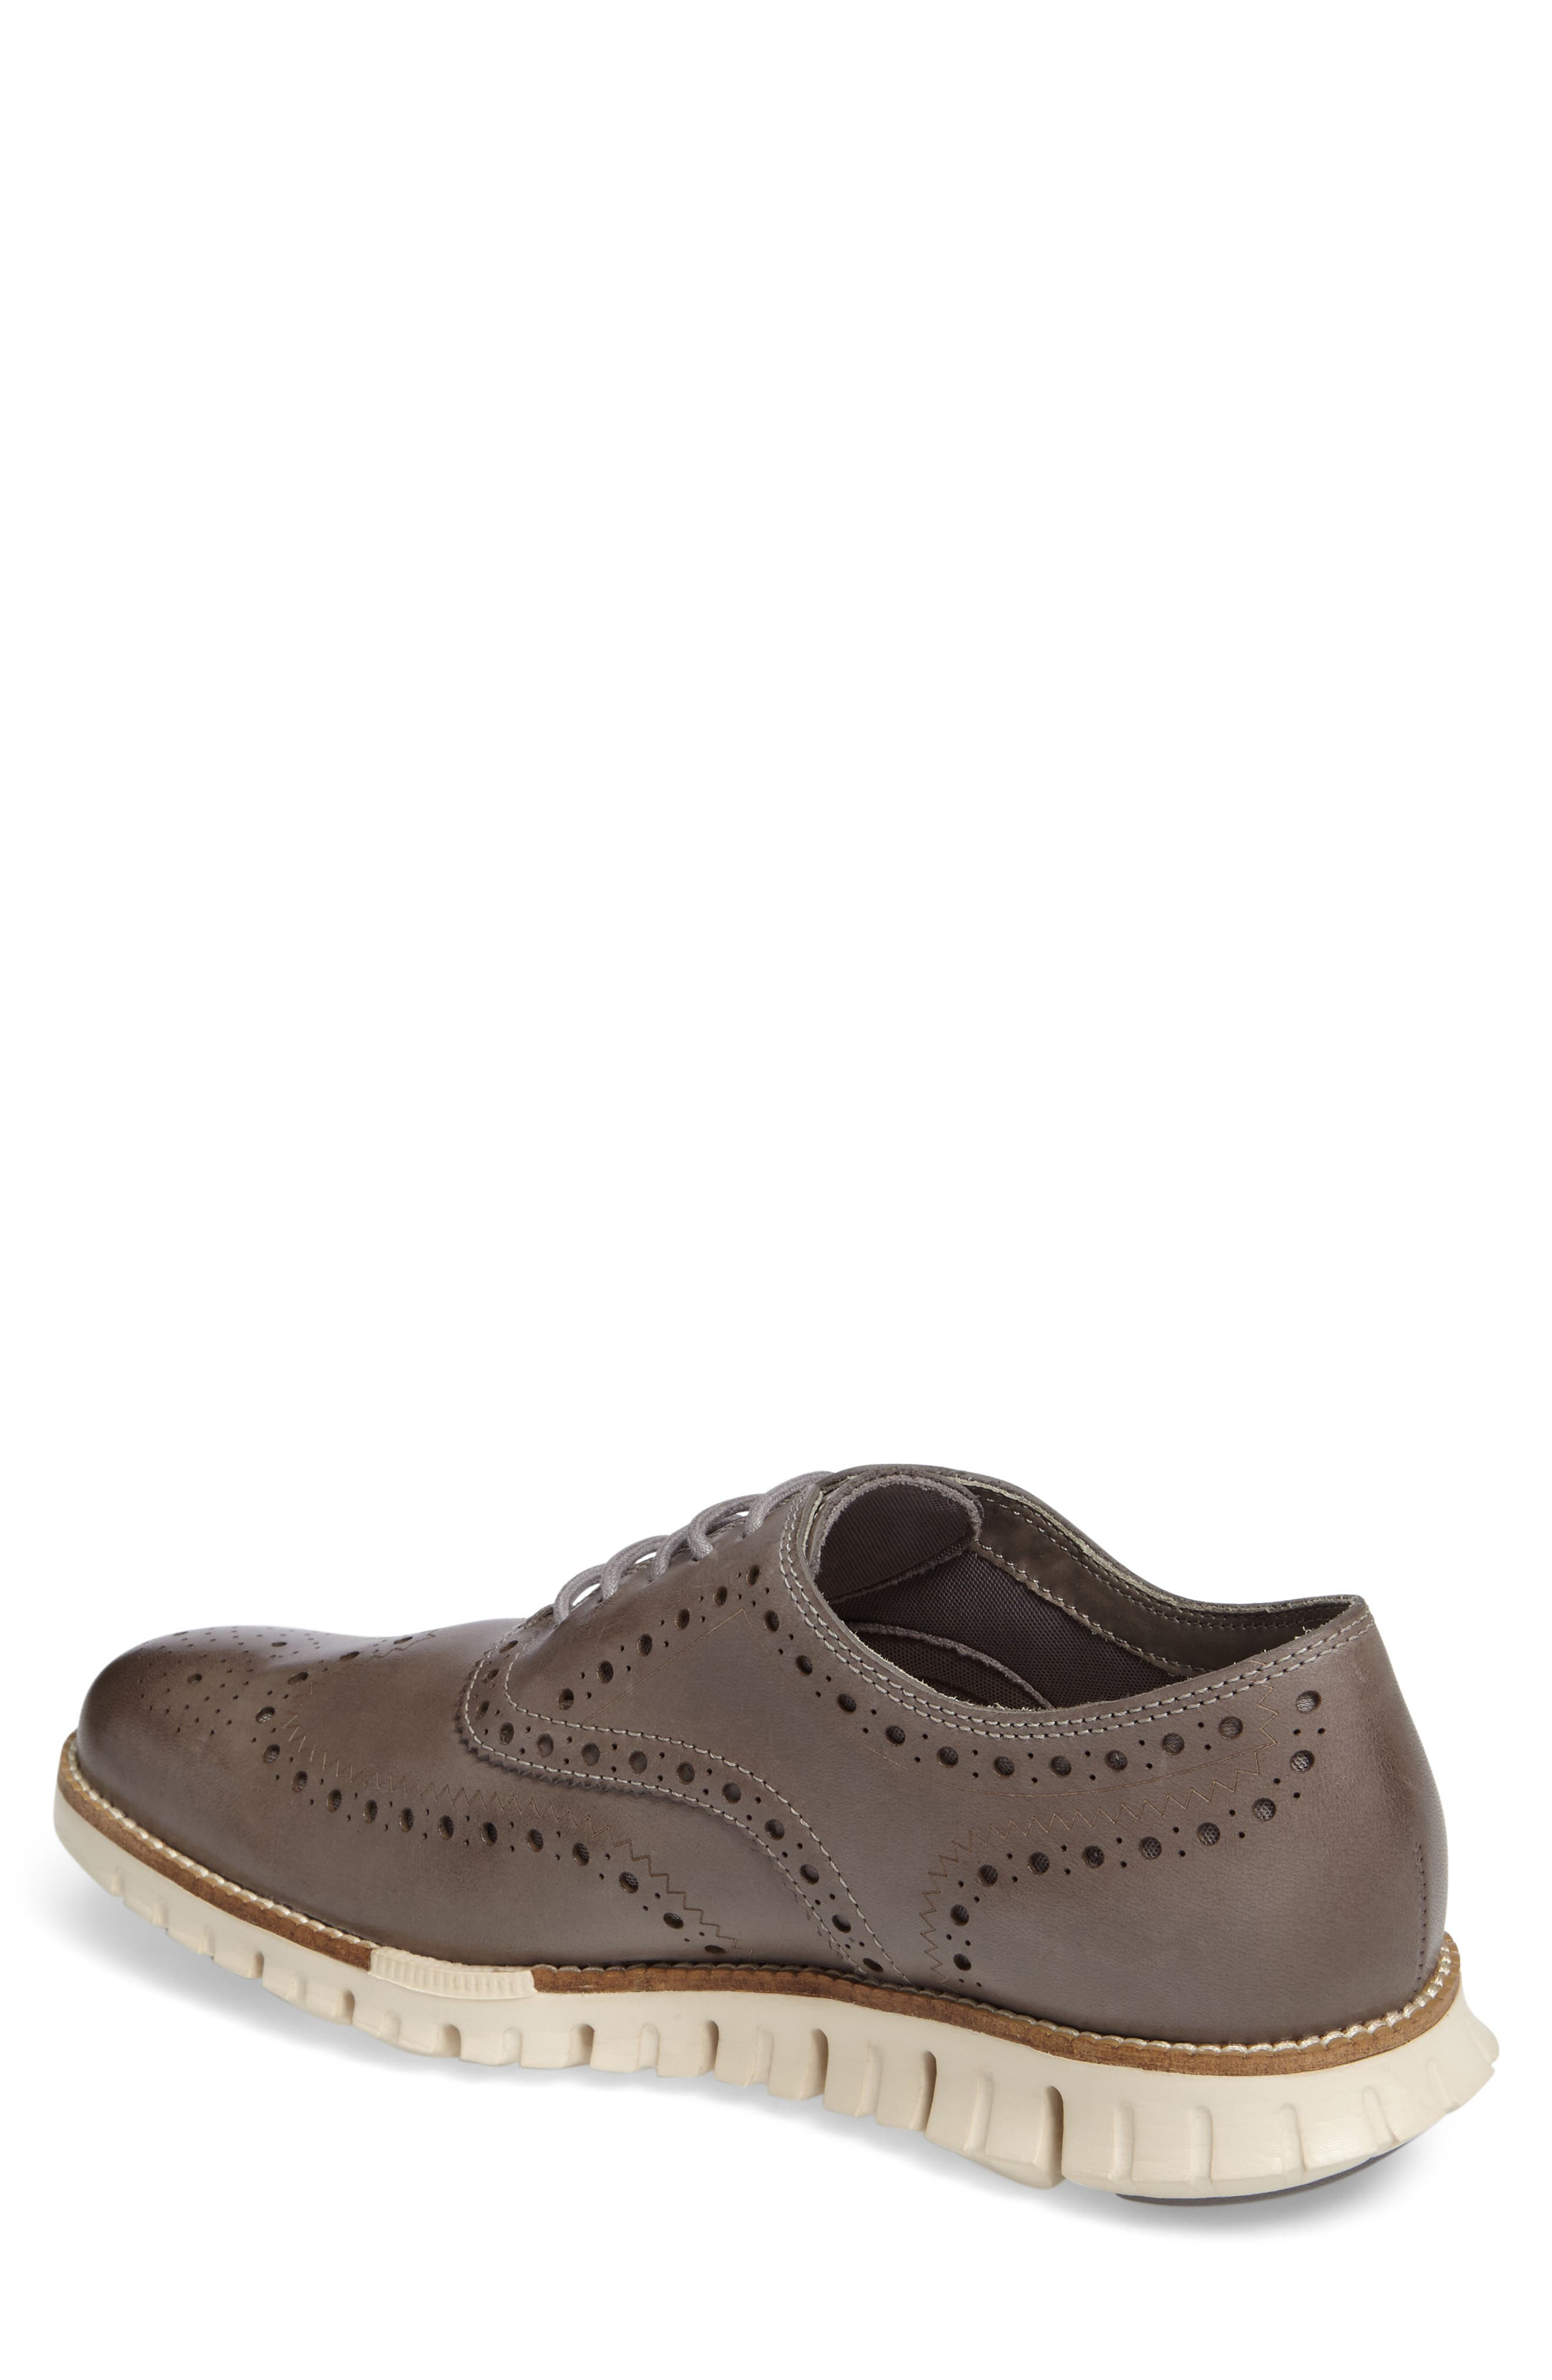 COLE HAAN, 'ZeroGrand' Wingtip Oxford, Alternate thumbnail 2, color, IRONSTONE LEATHER